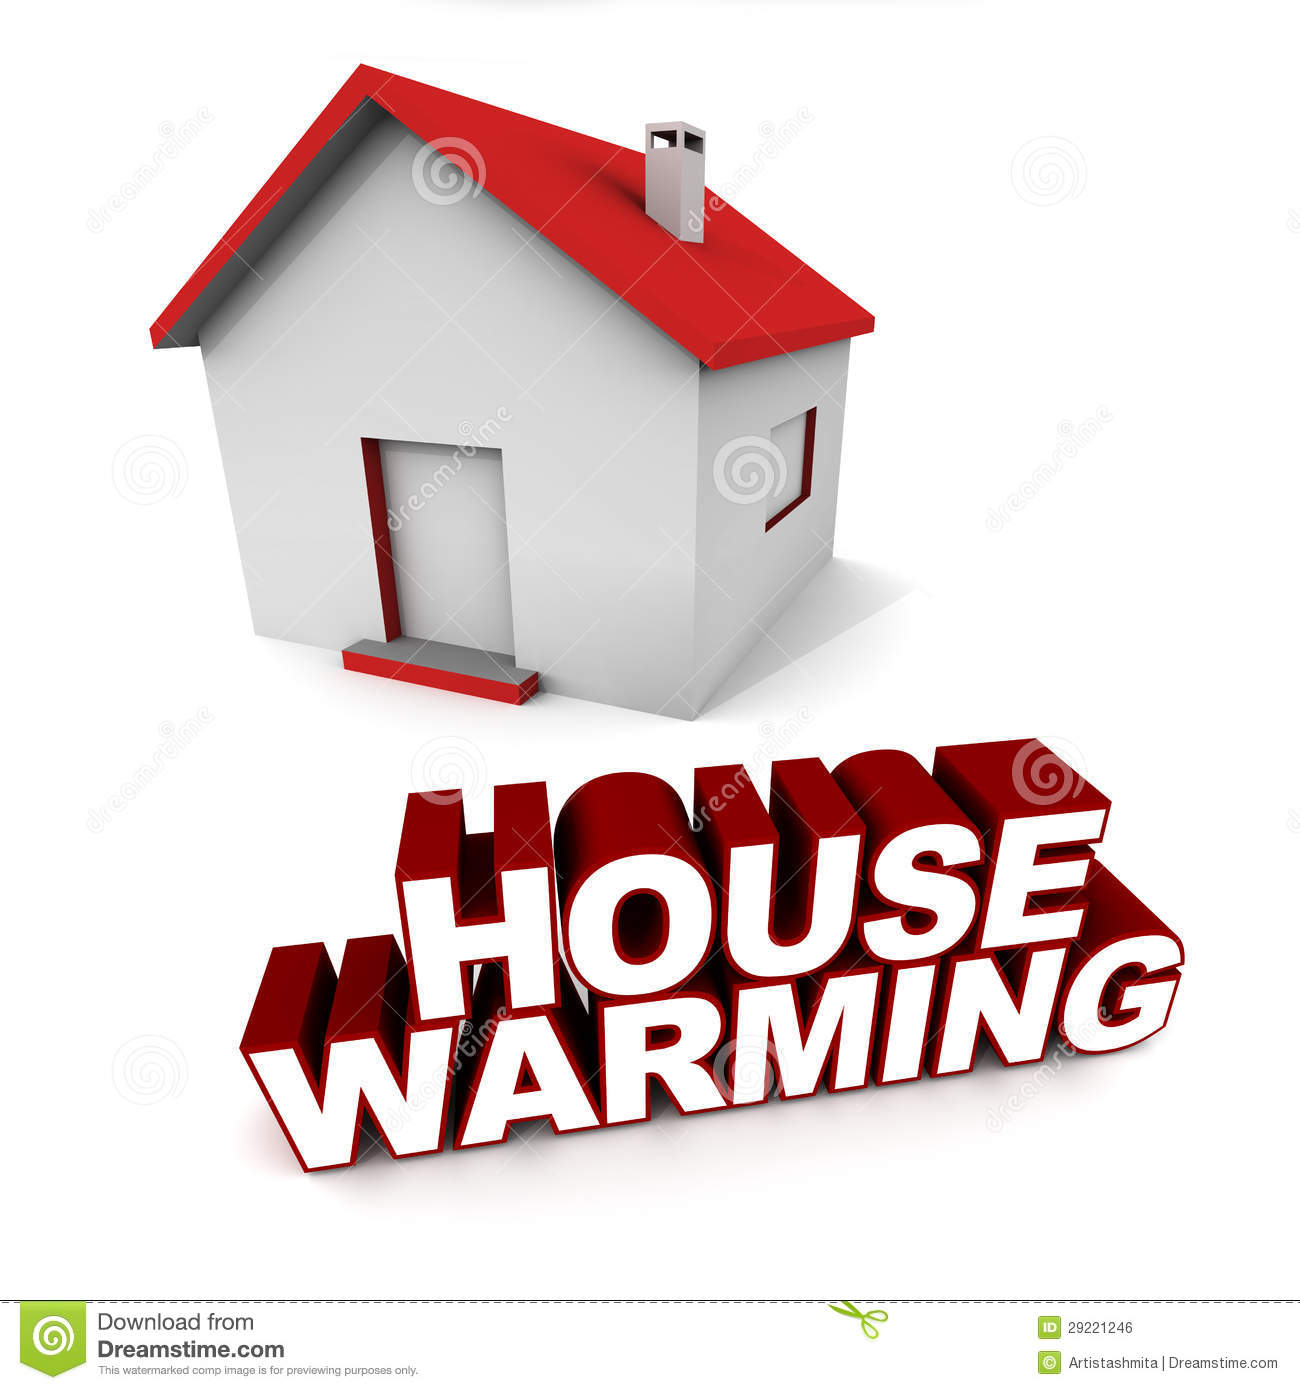 House Plans Sri Lanka House Warming Stock Illustration Illustration Of House